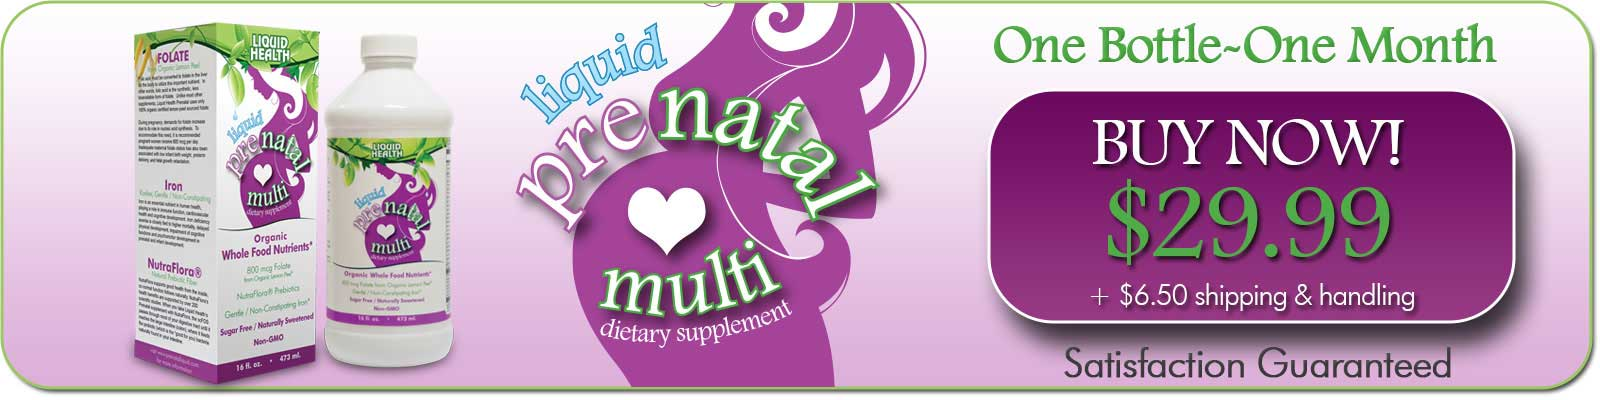 Buy 1 Bottle of Prenatal Vitamins